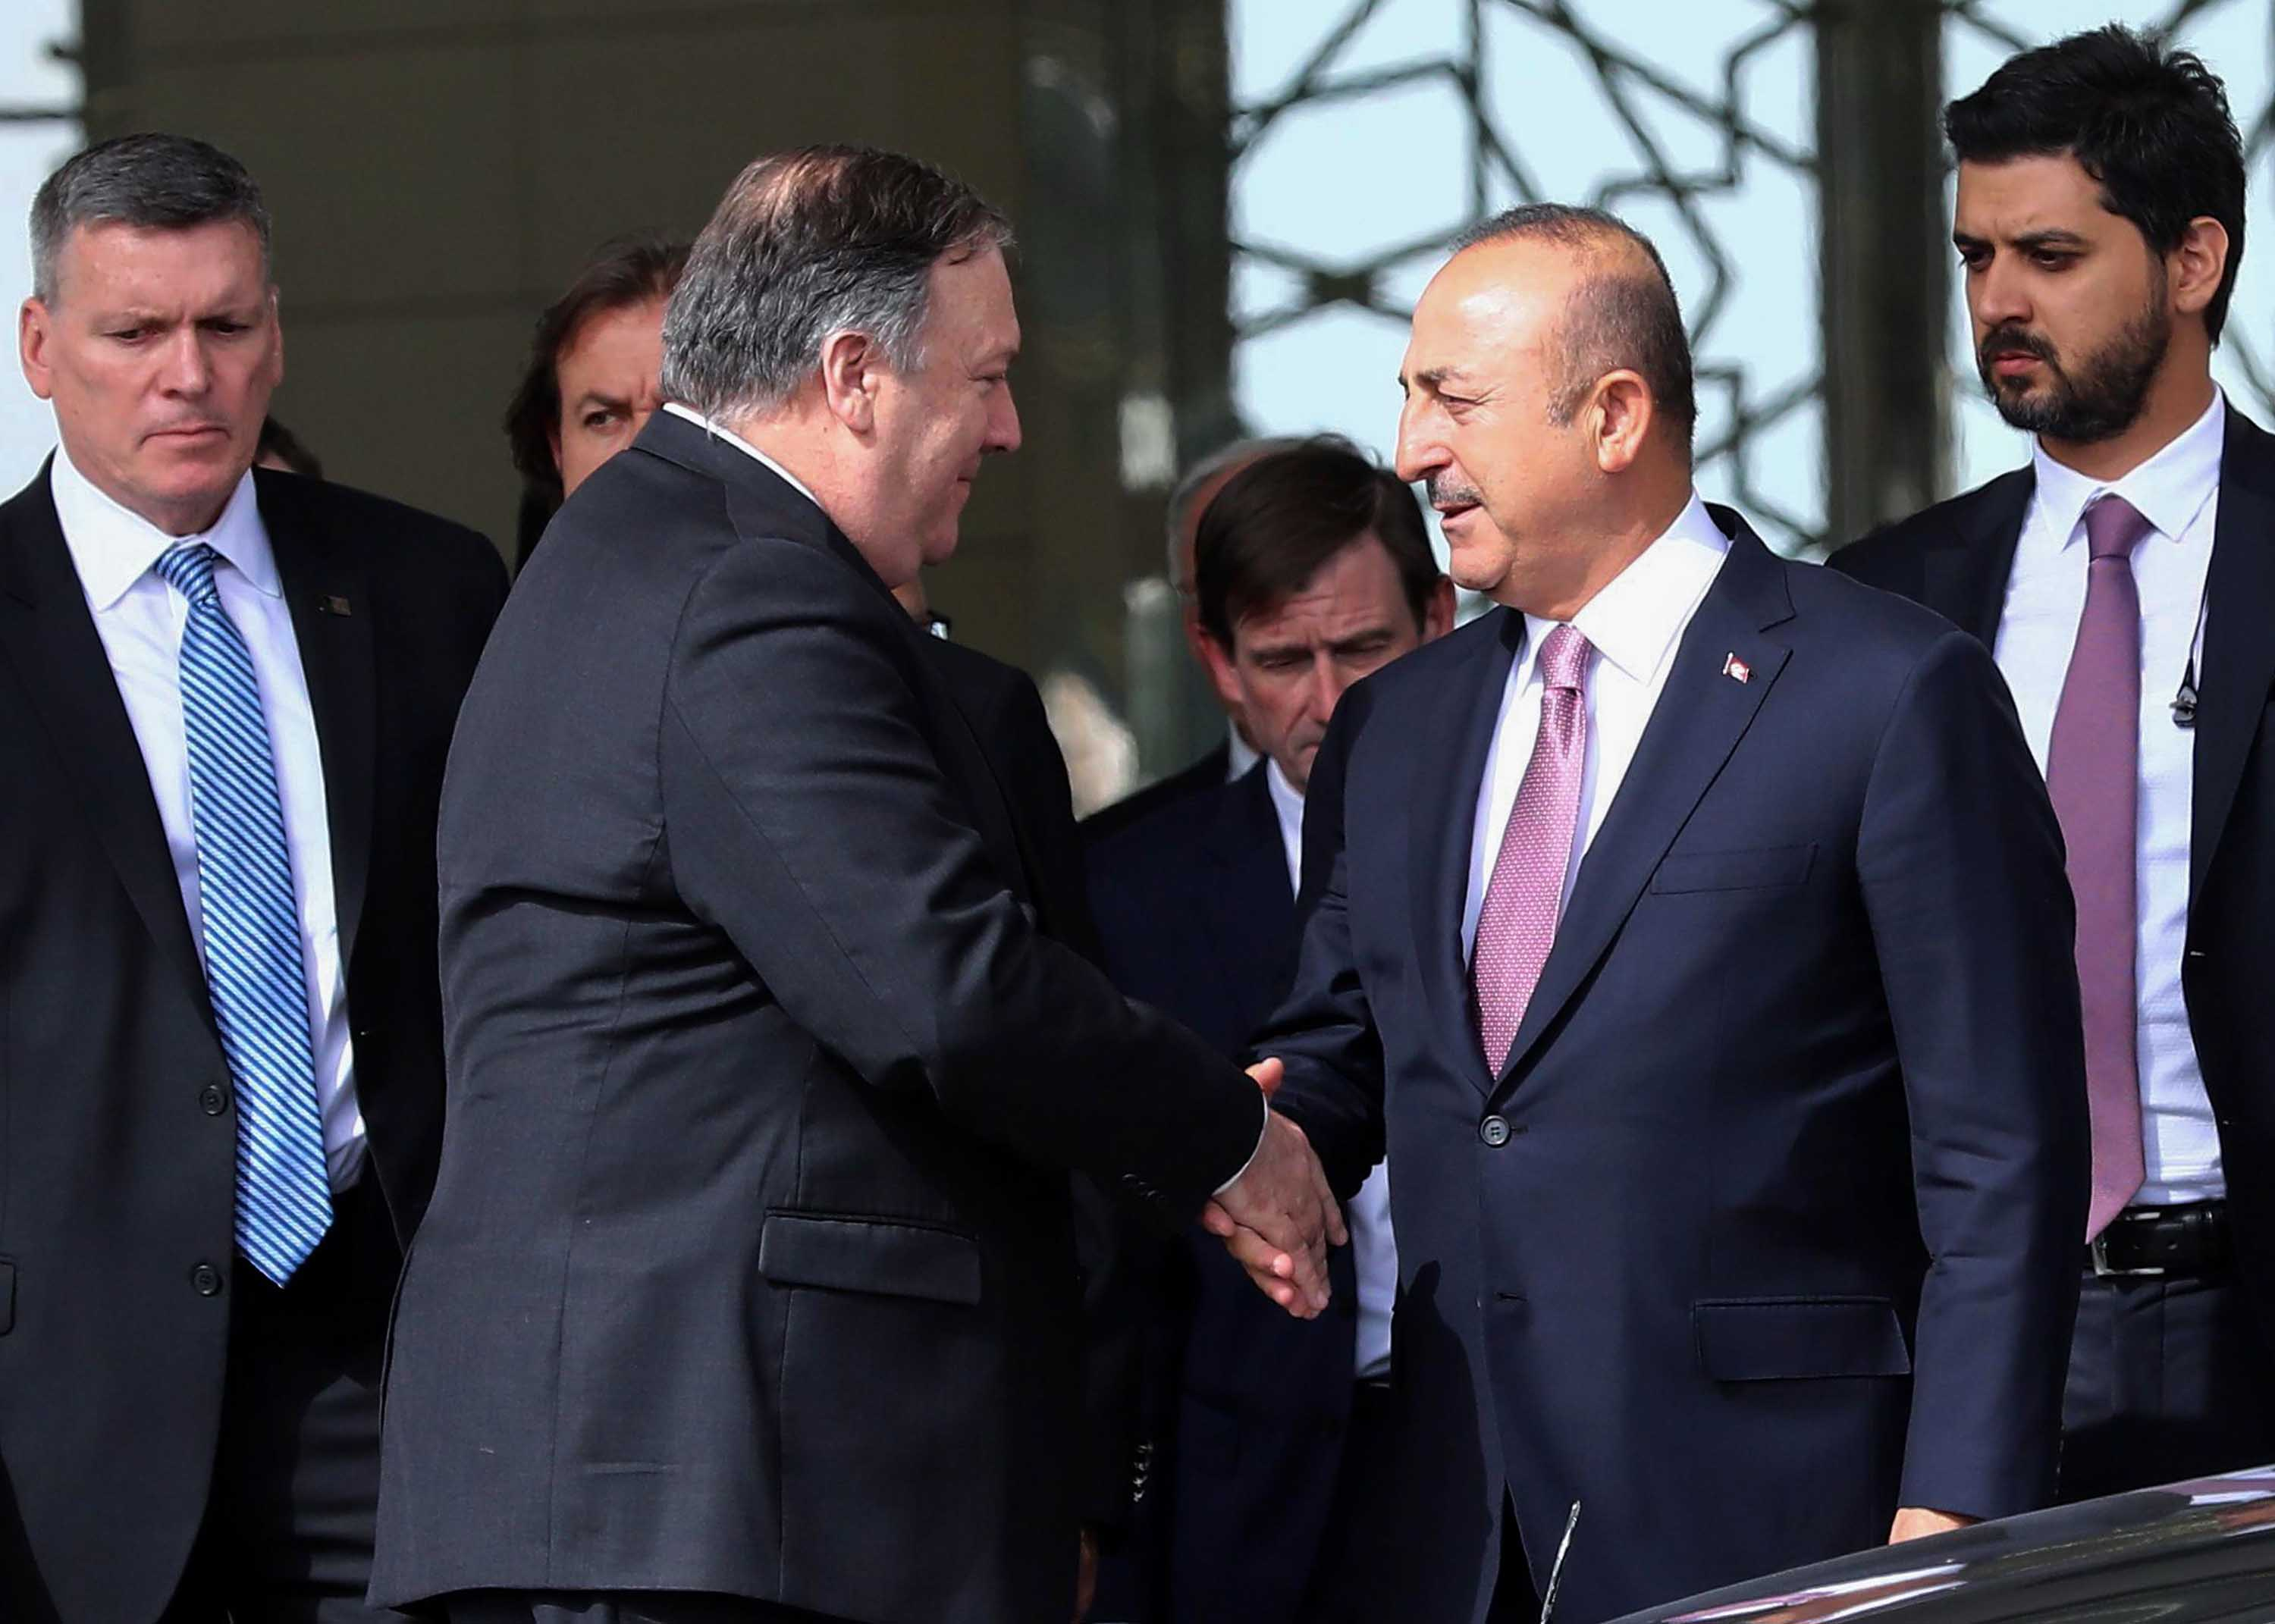 US Secretary of State Mike Pompeo and Turkish Foreign Minister MevluCavusoglu shake hands after their meeting at Ankara Esenboga Airport in Ankara, Turkey, on Wednesday.